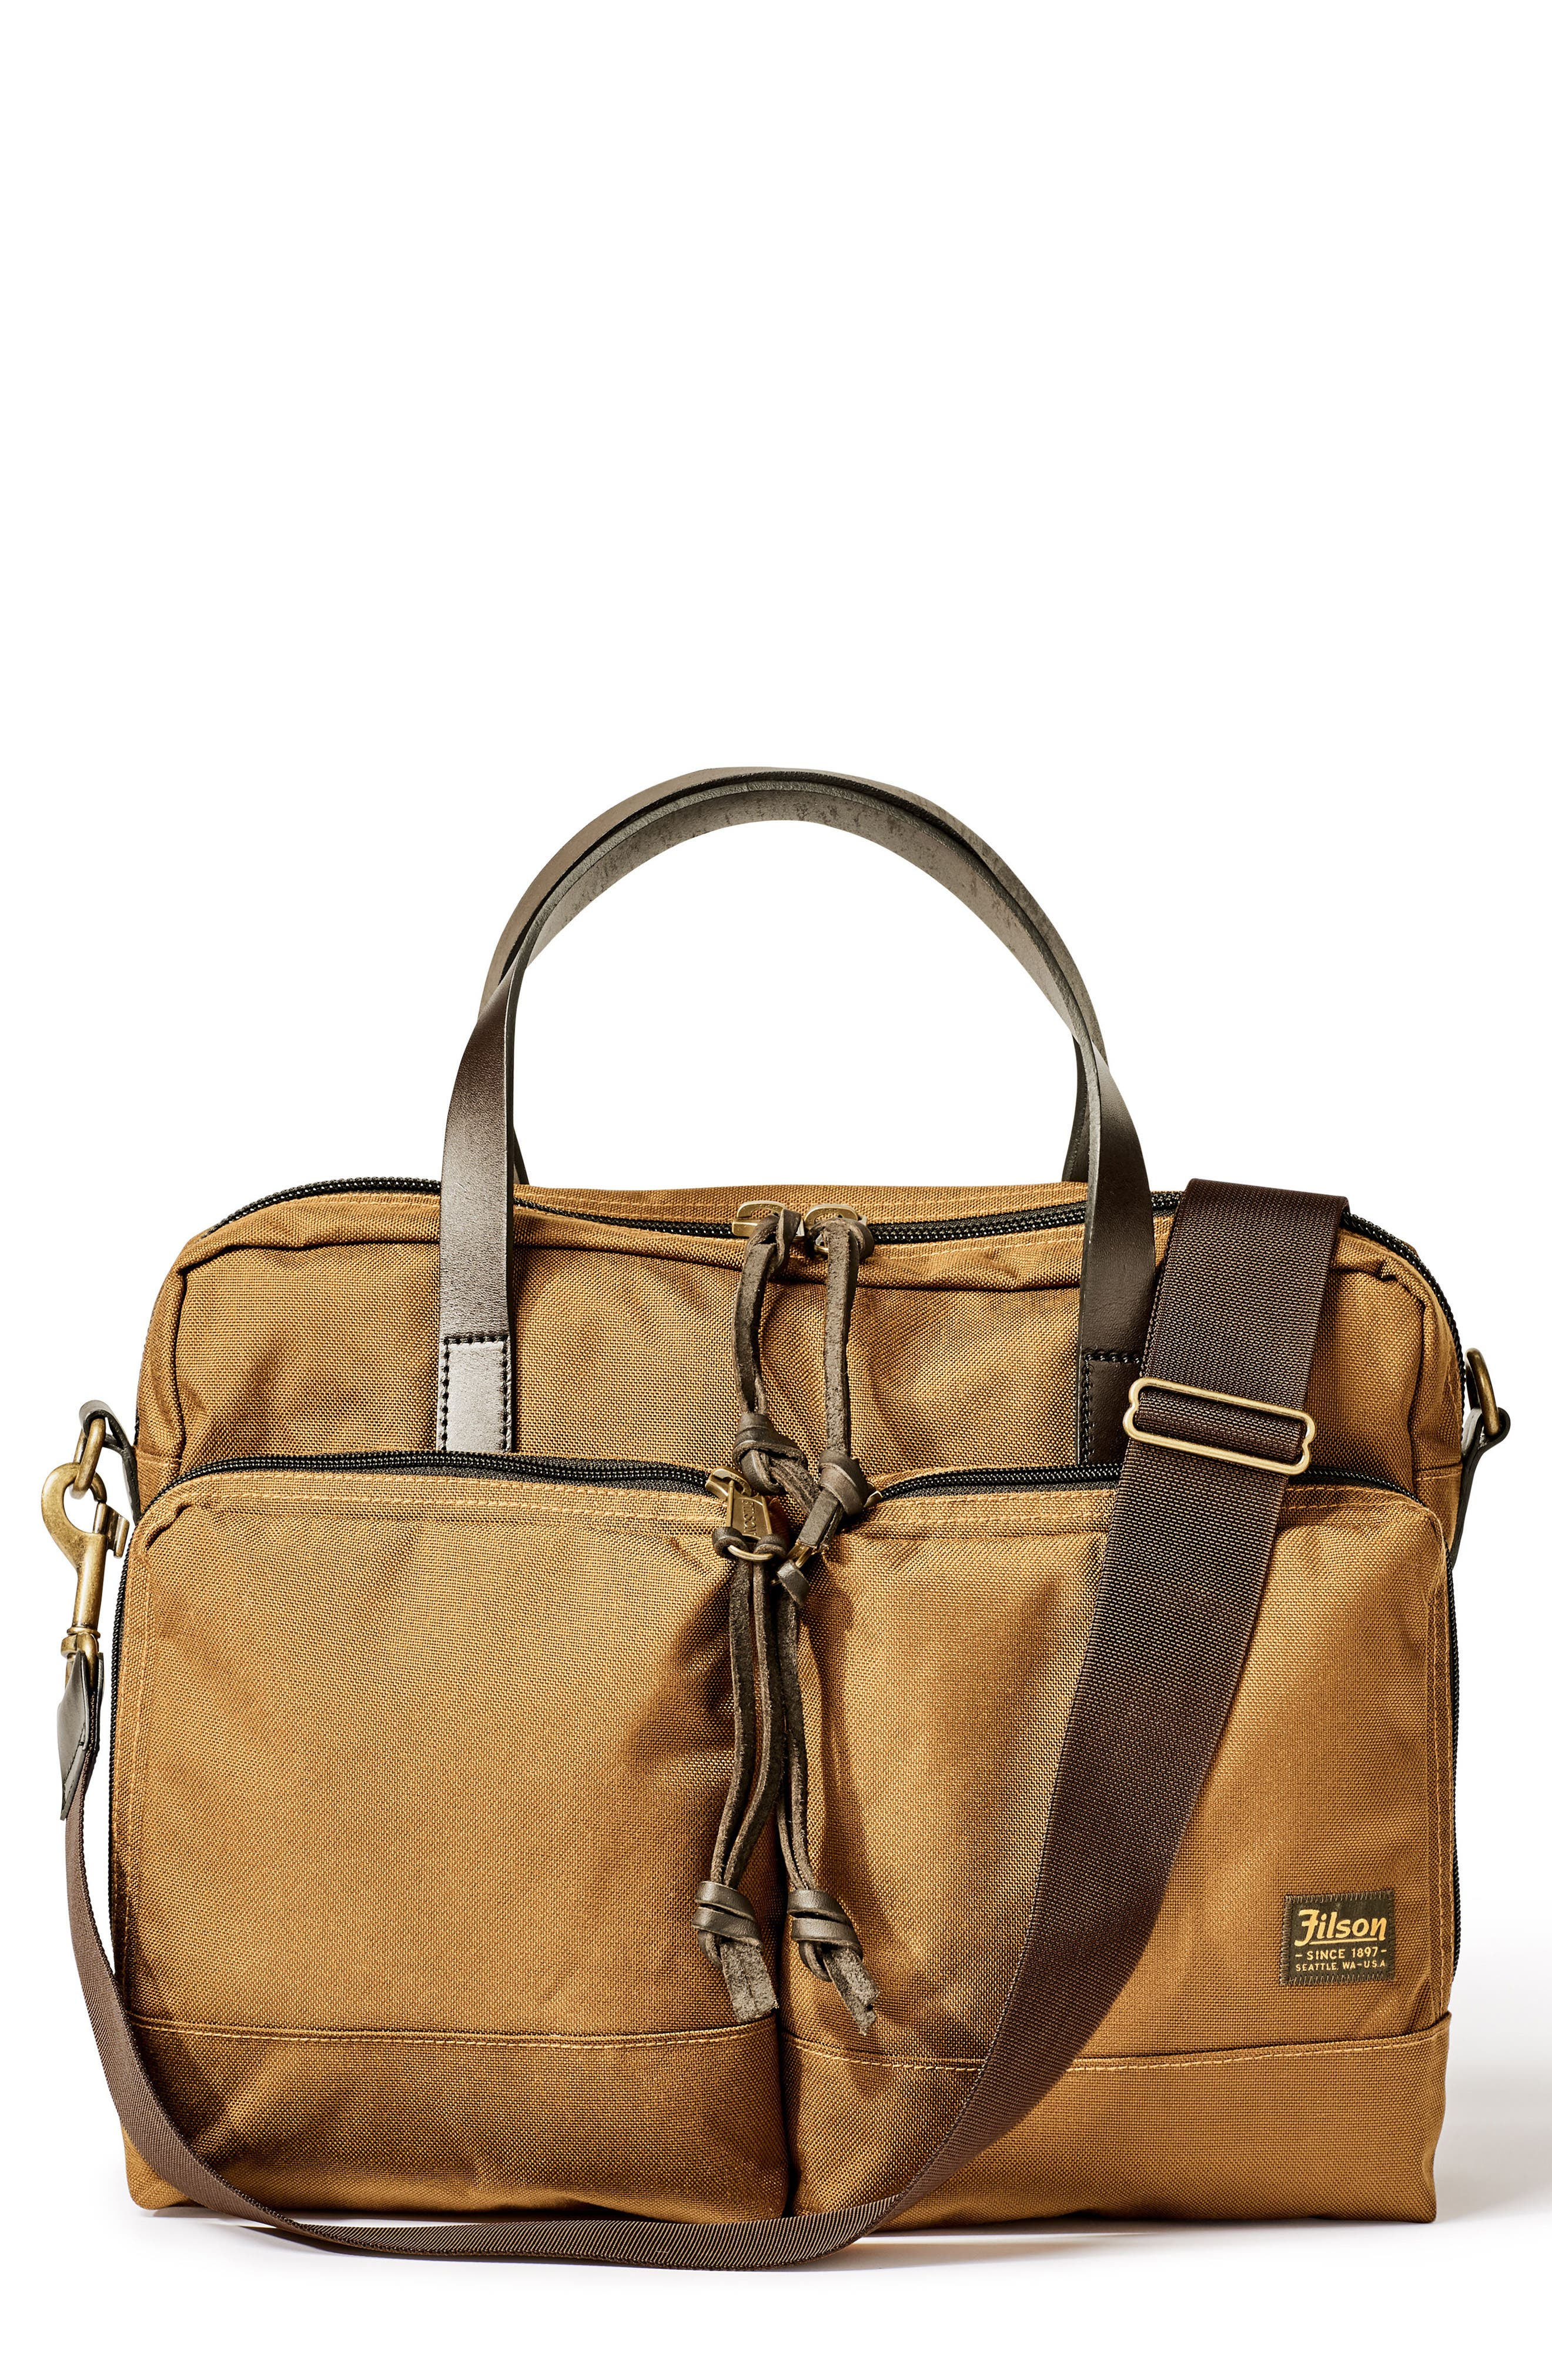 FILSON, Dryden Briefcase, Main thumbnail 1, color, WHISKEY